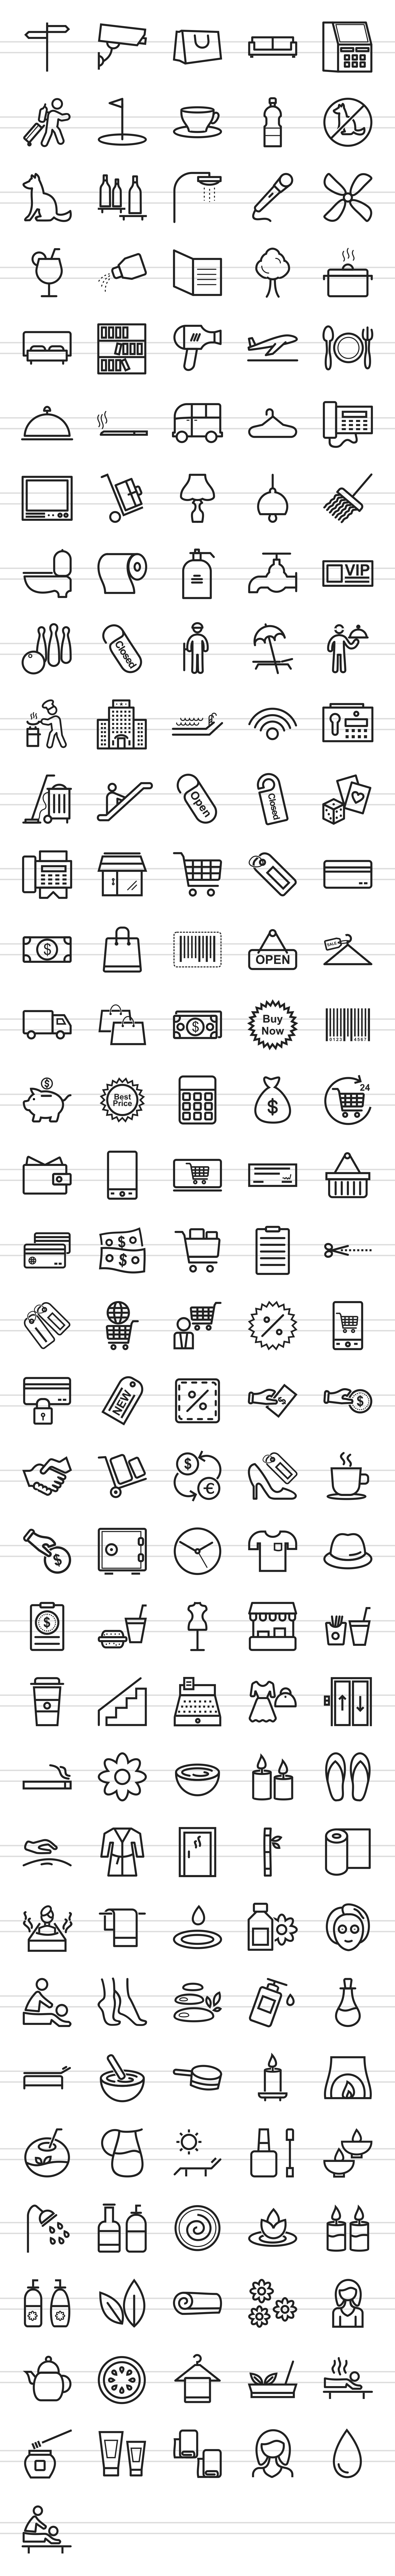 166 Hotel & Relaxation Line Icons example image 2